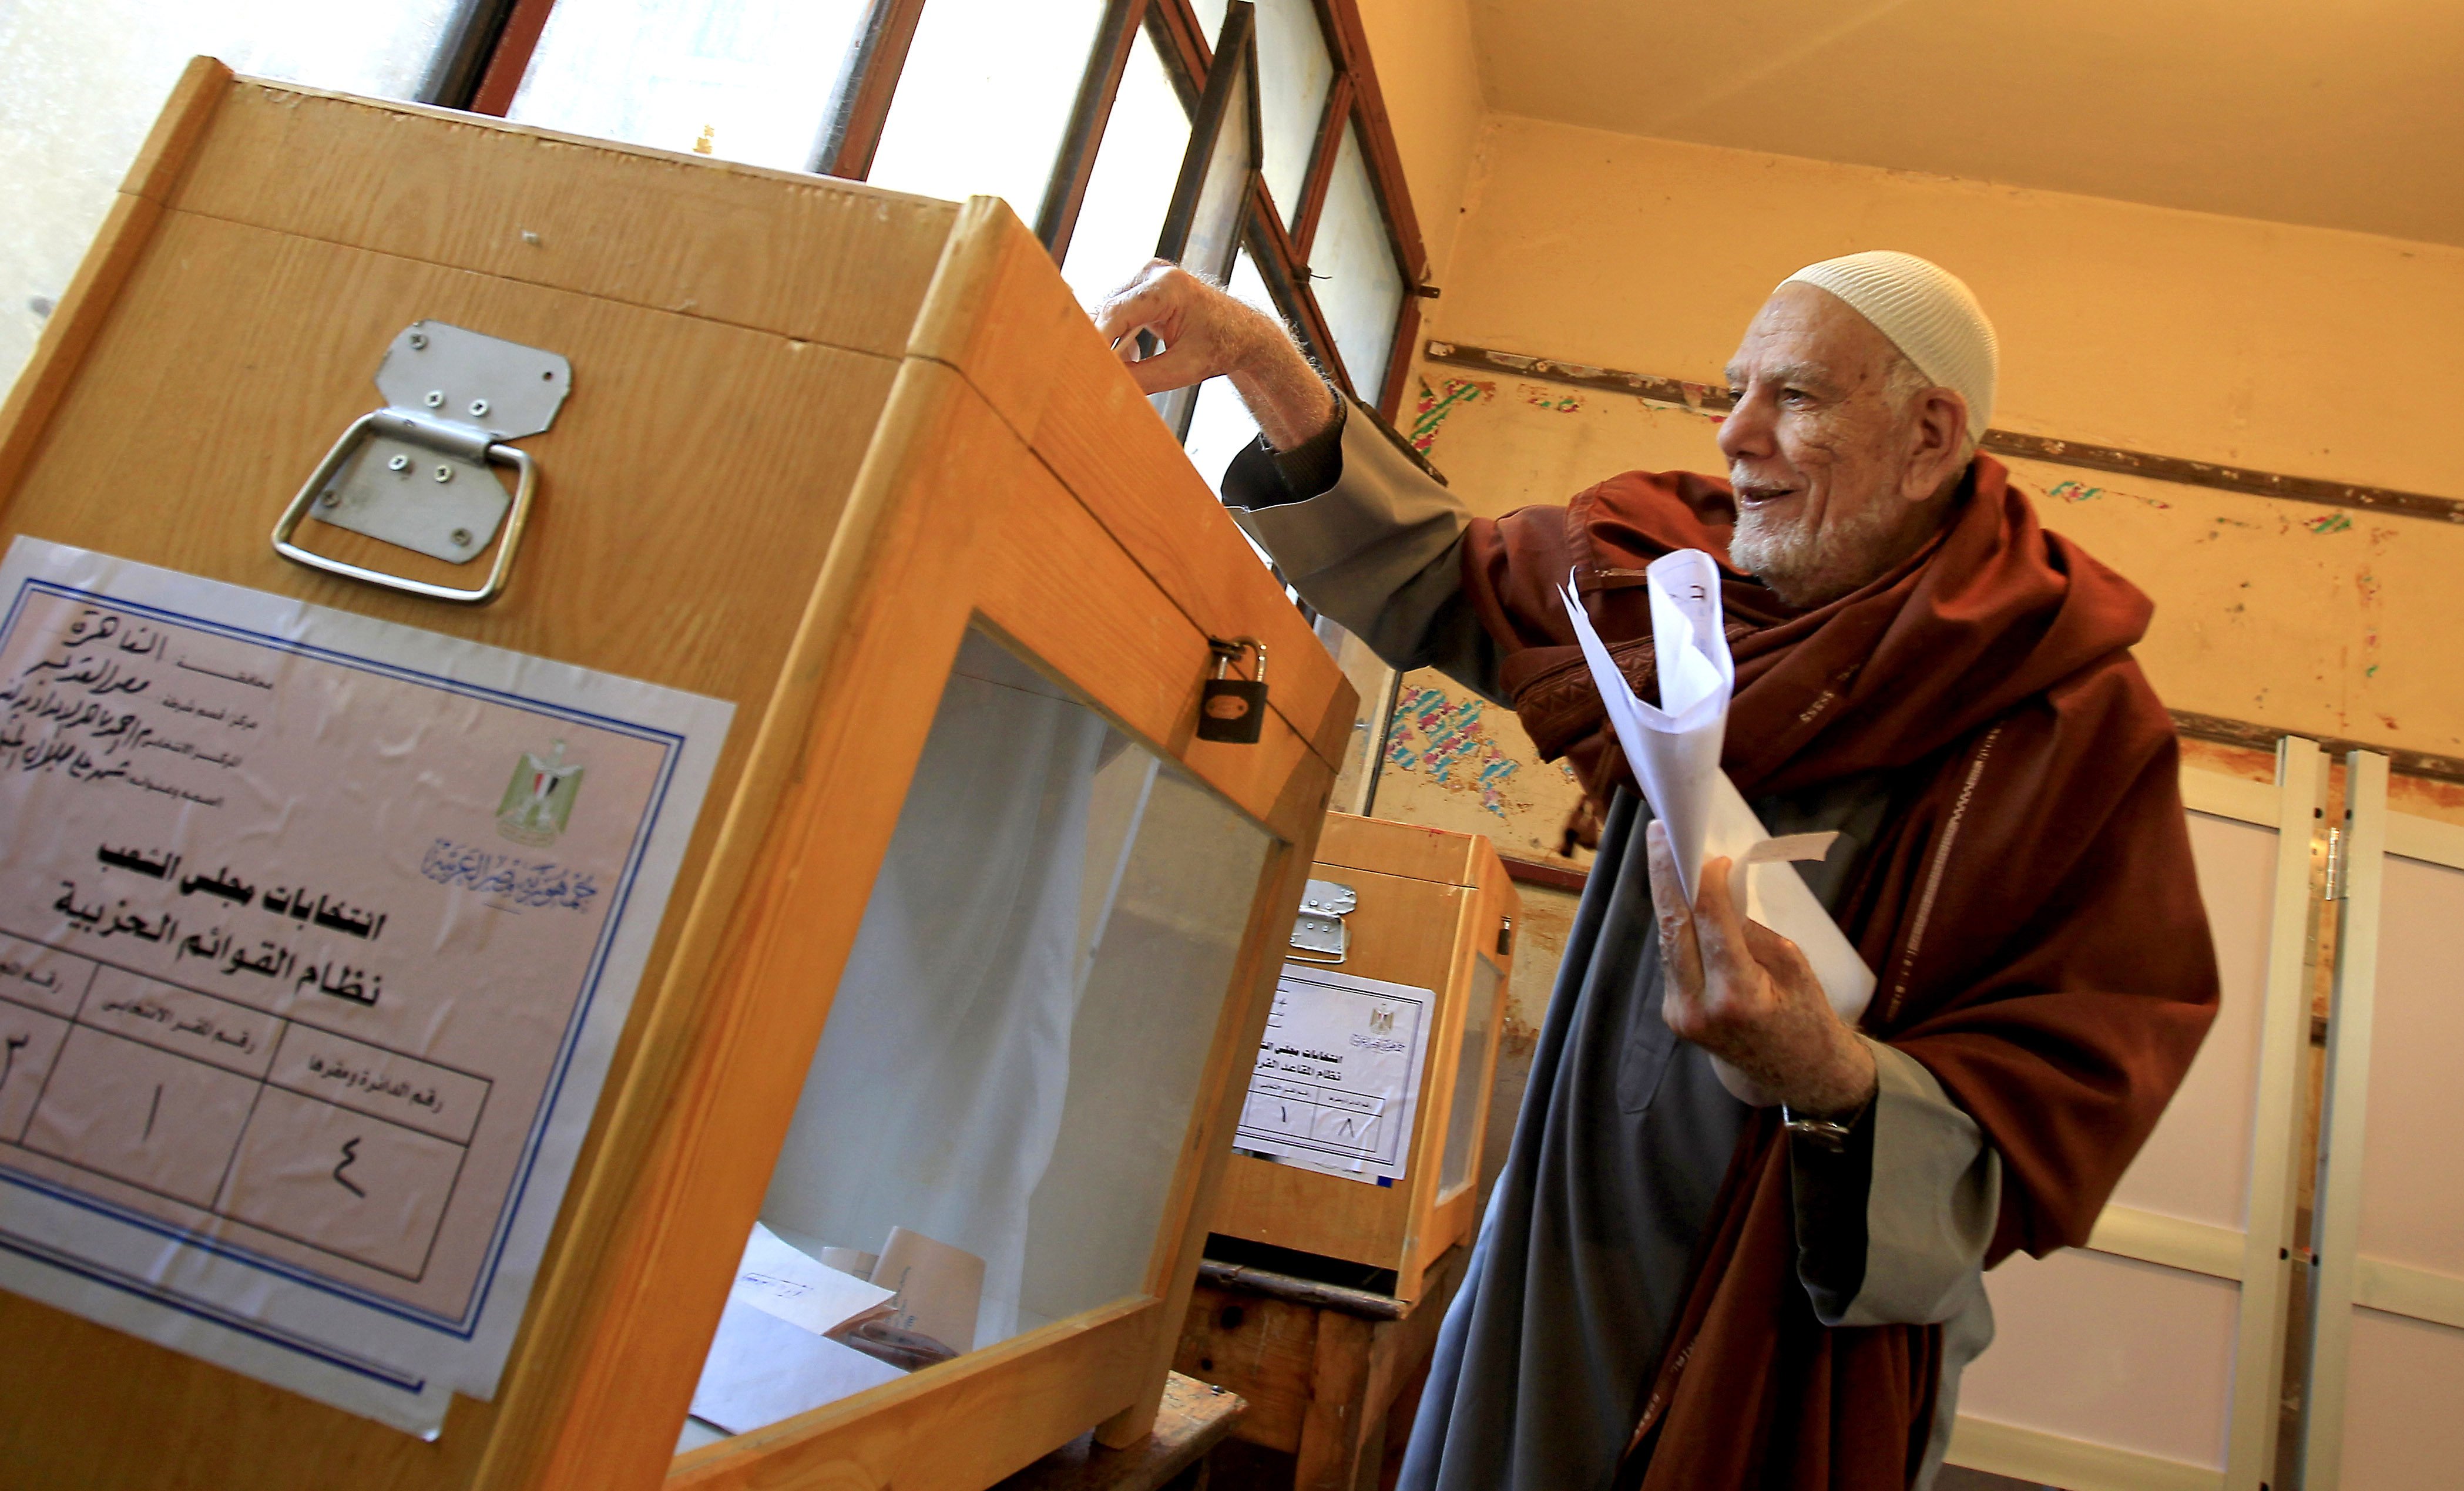 An elderly Egyptian man casts his vote at a polling station in the Manial neighbourhood of Cairo on November 28, 2011. Credit: Mahmud Hams/ AFP